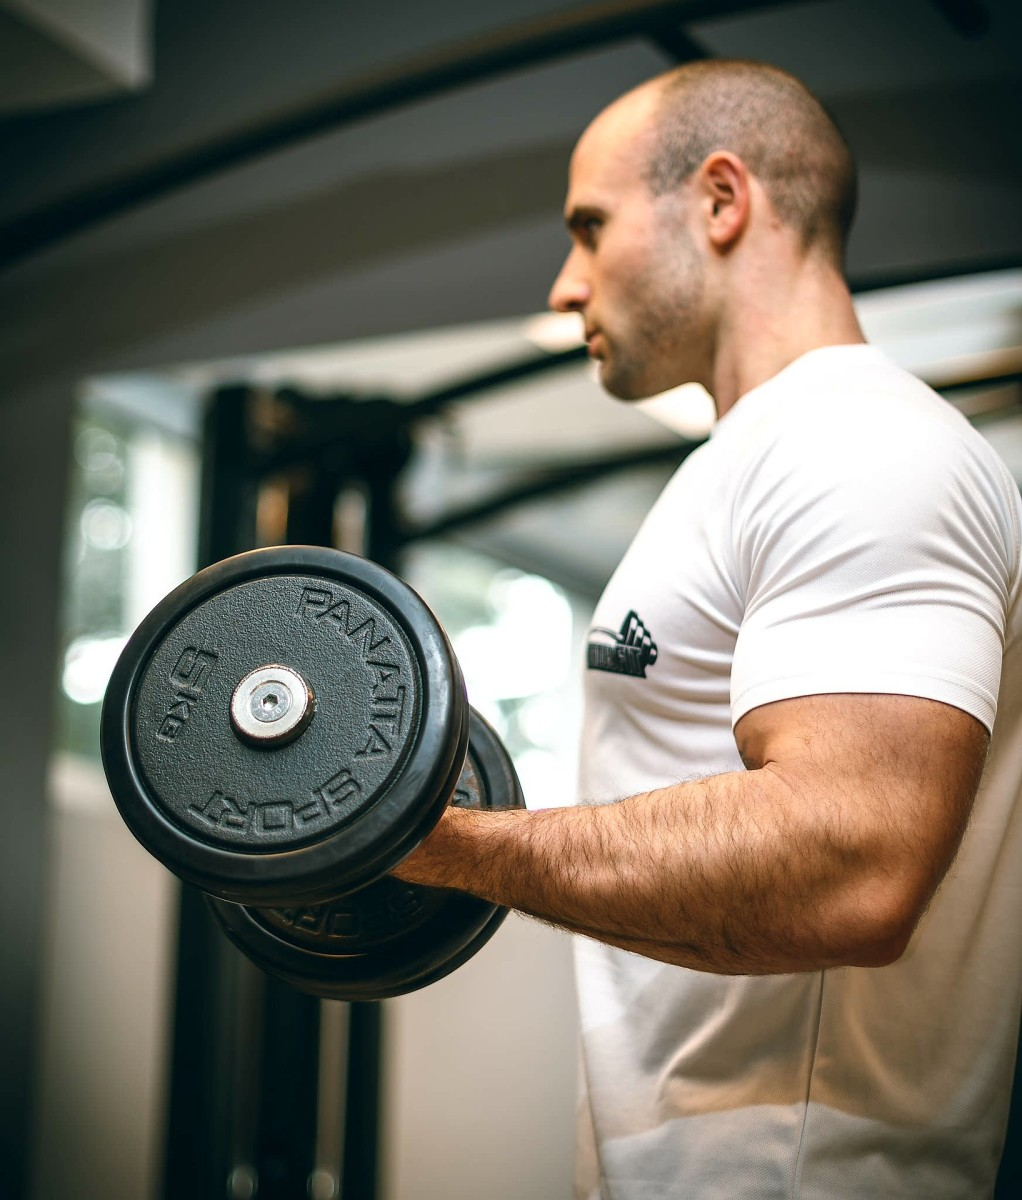 How to Improve Your Arm Workout for Size and Definition